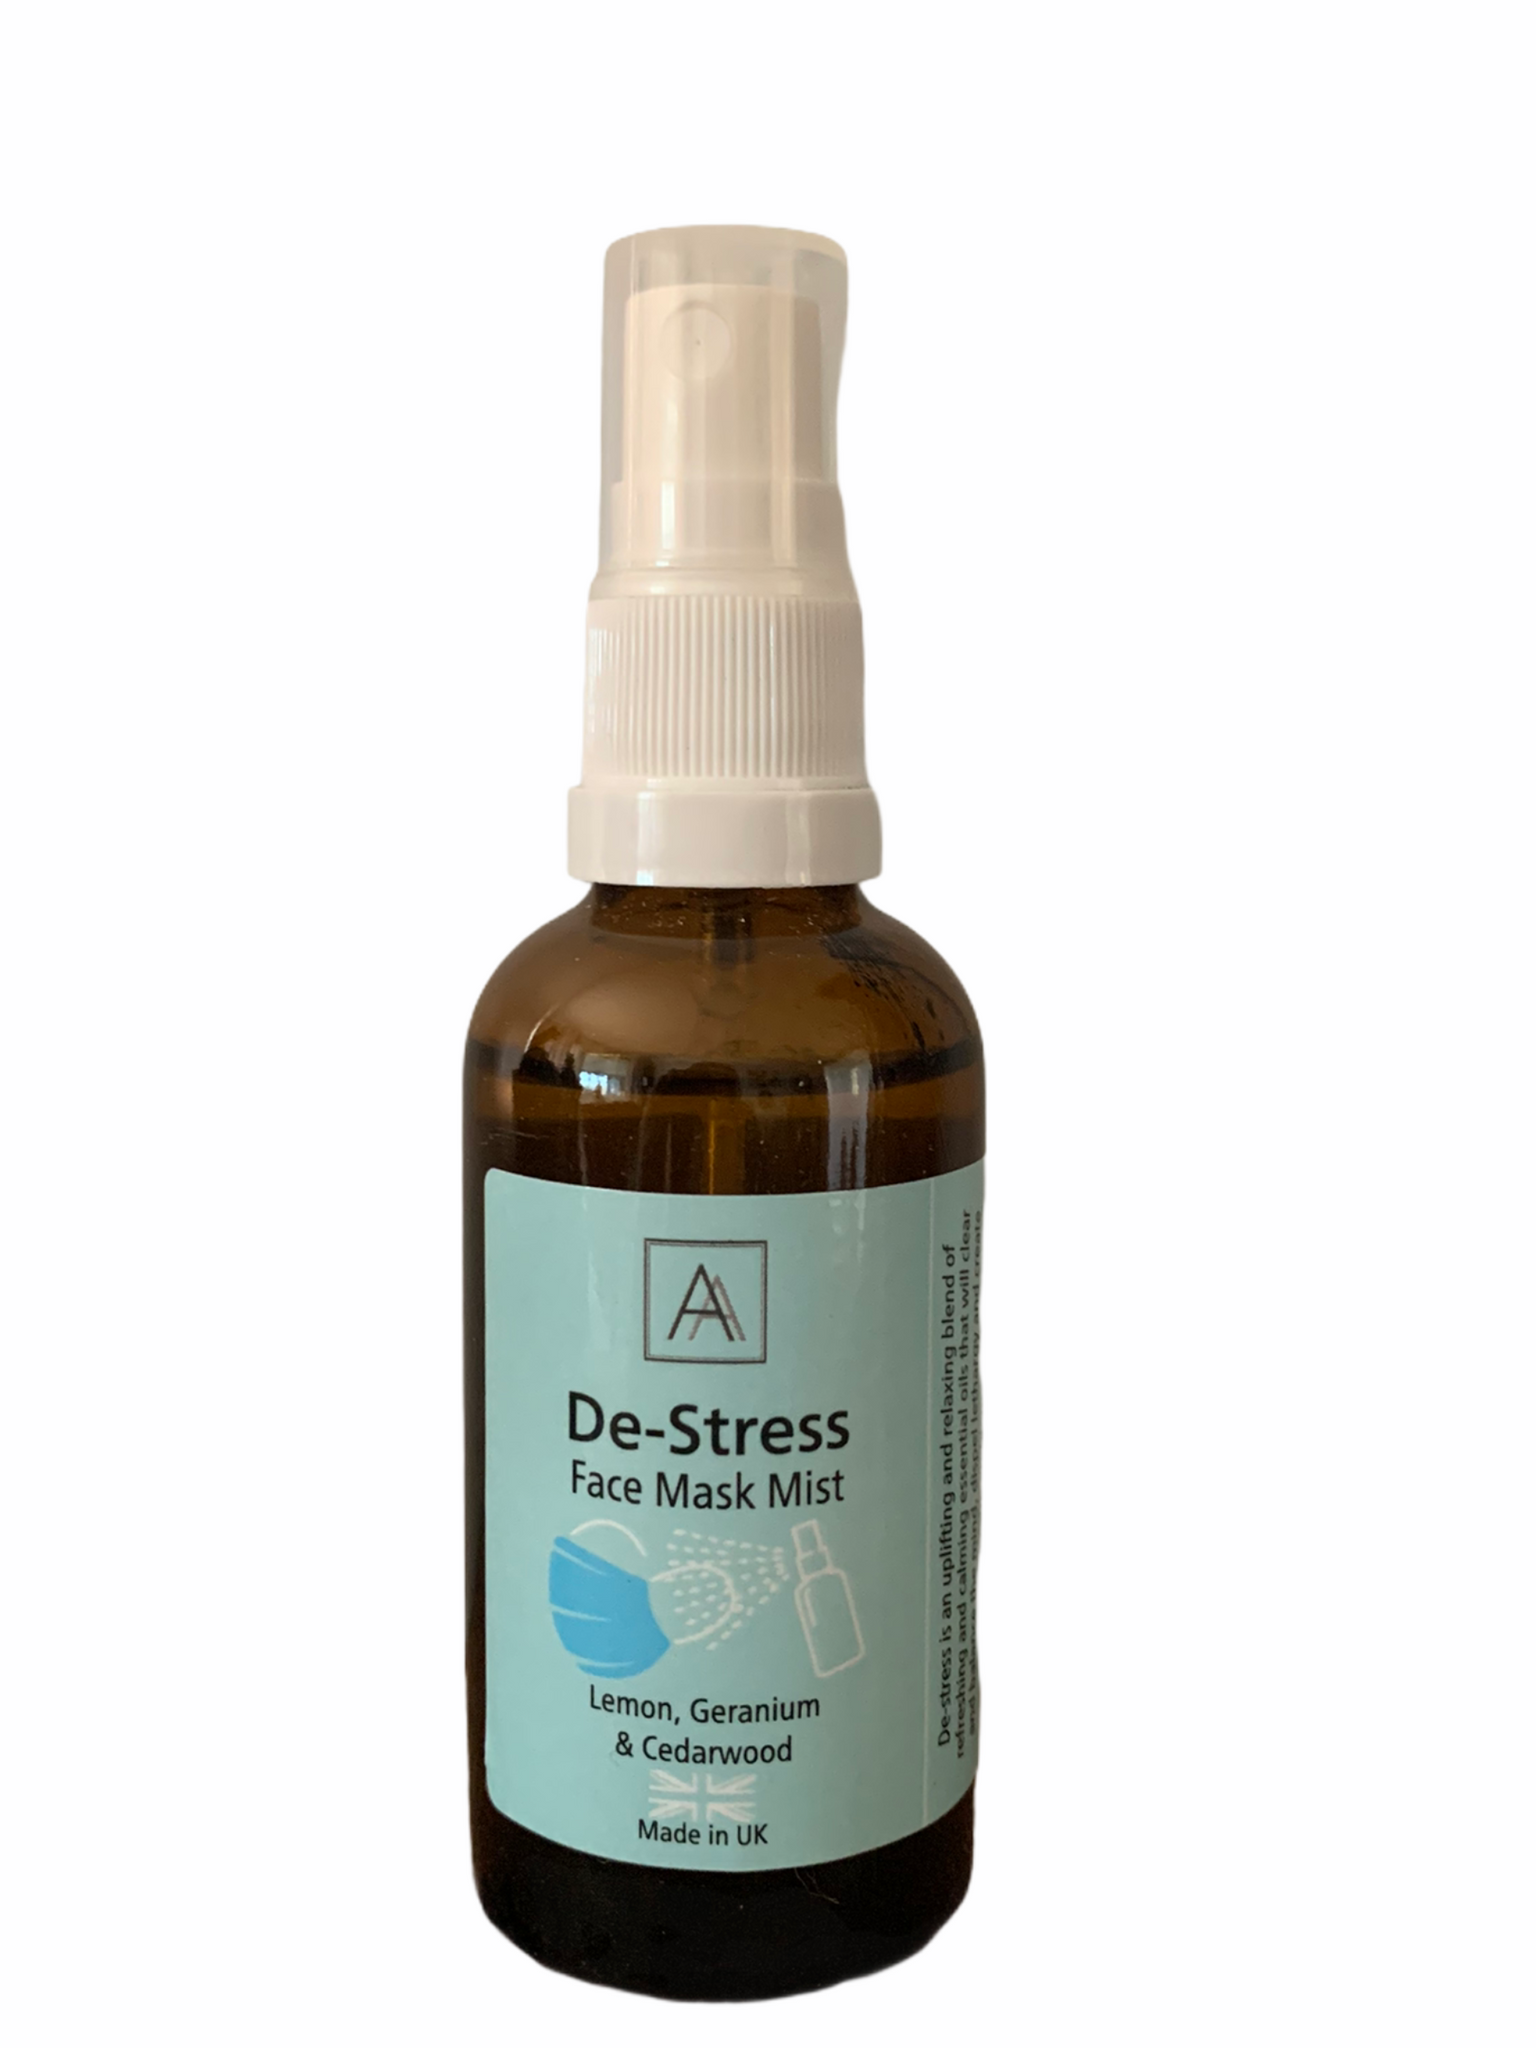 De-stress Face Mask Mist